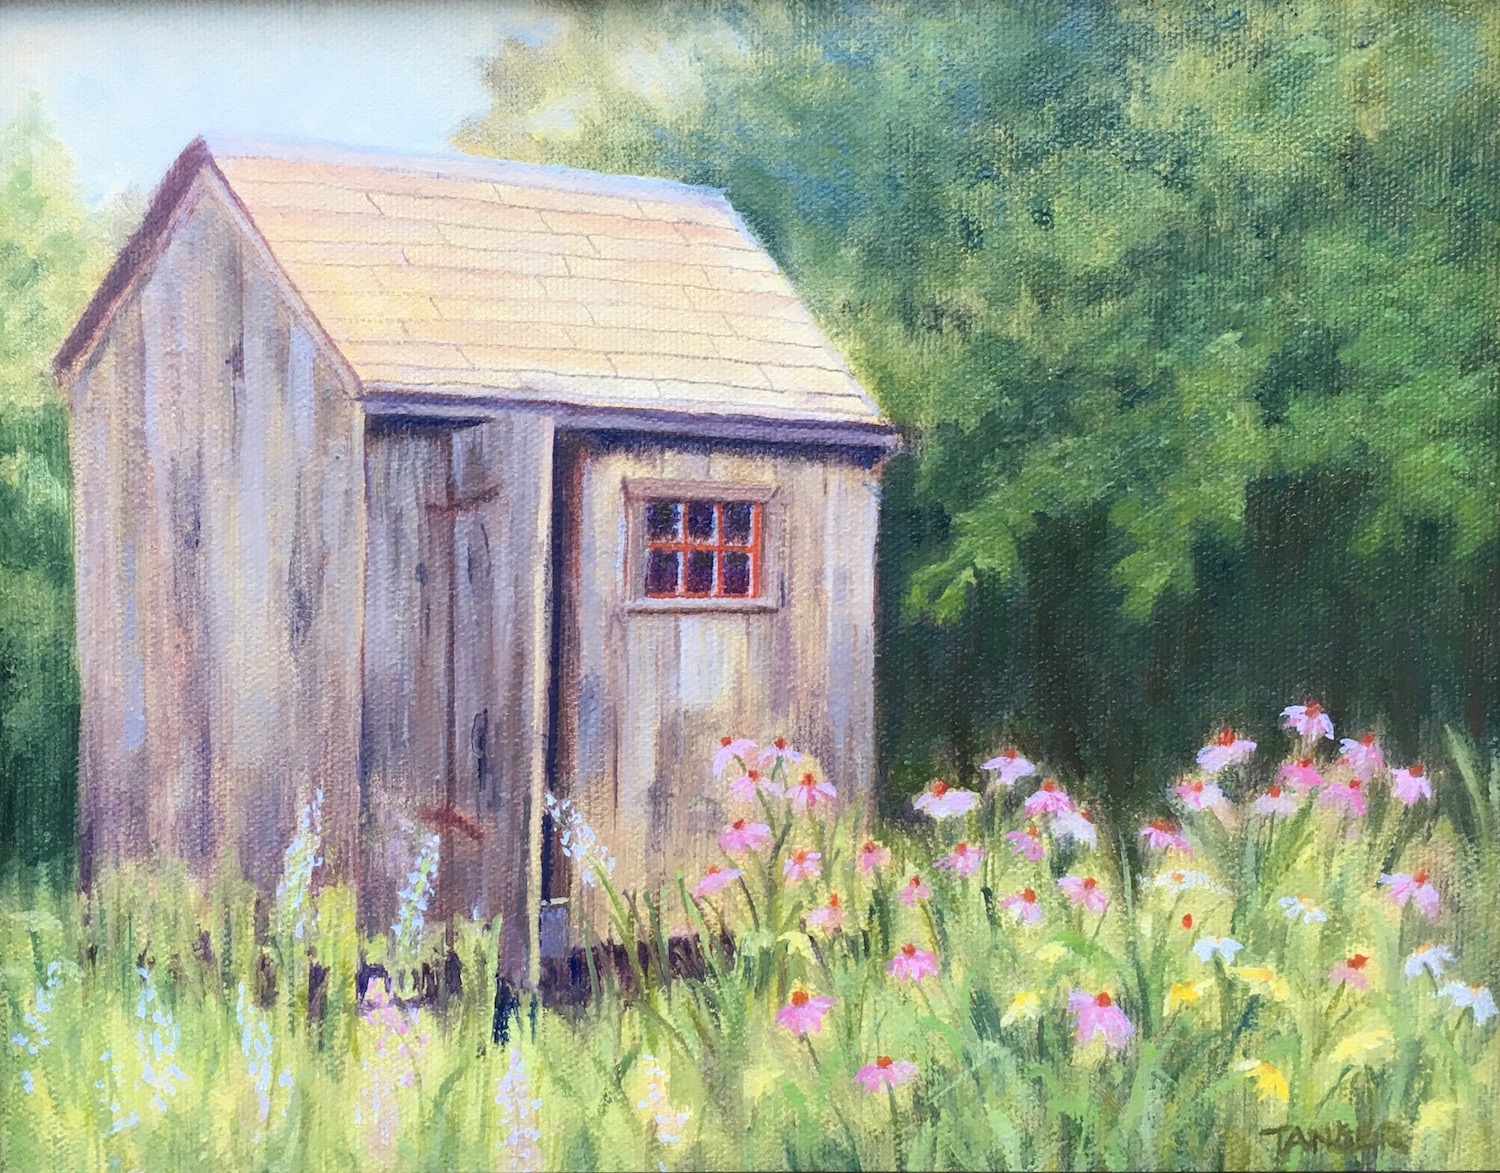 oil painting of a small garden shed with door open